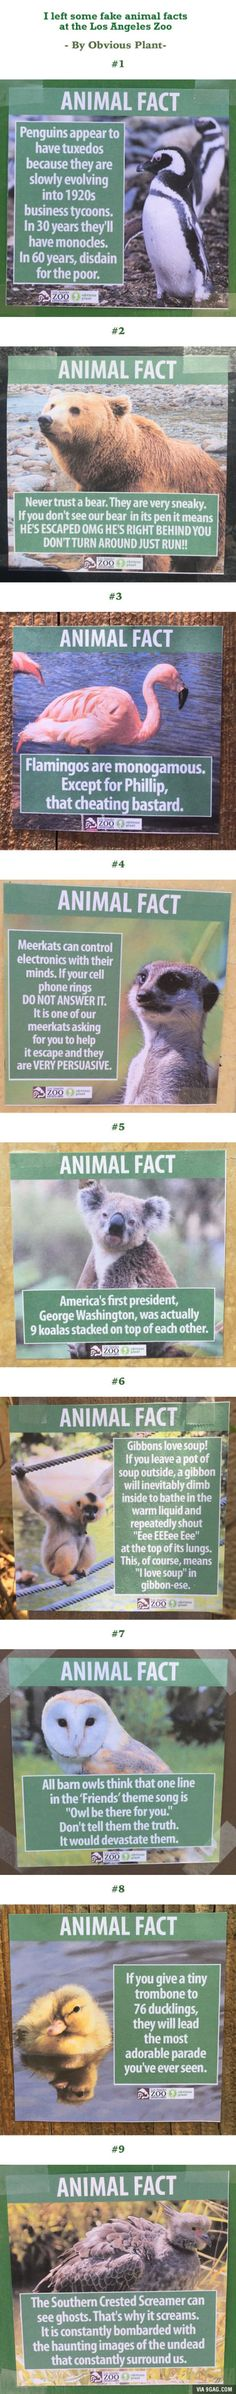 Genius Posts Educational Animal Facts At The Los Angeles Zoo (By Obvious Plant)